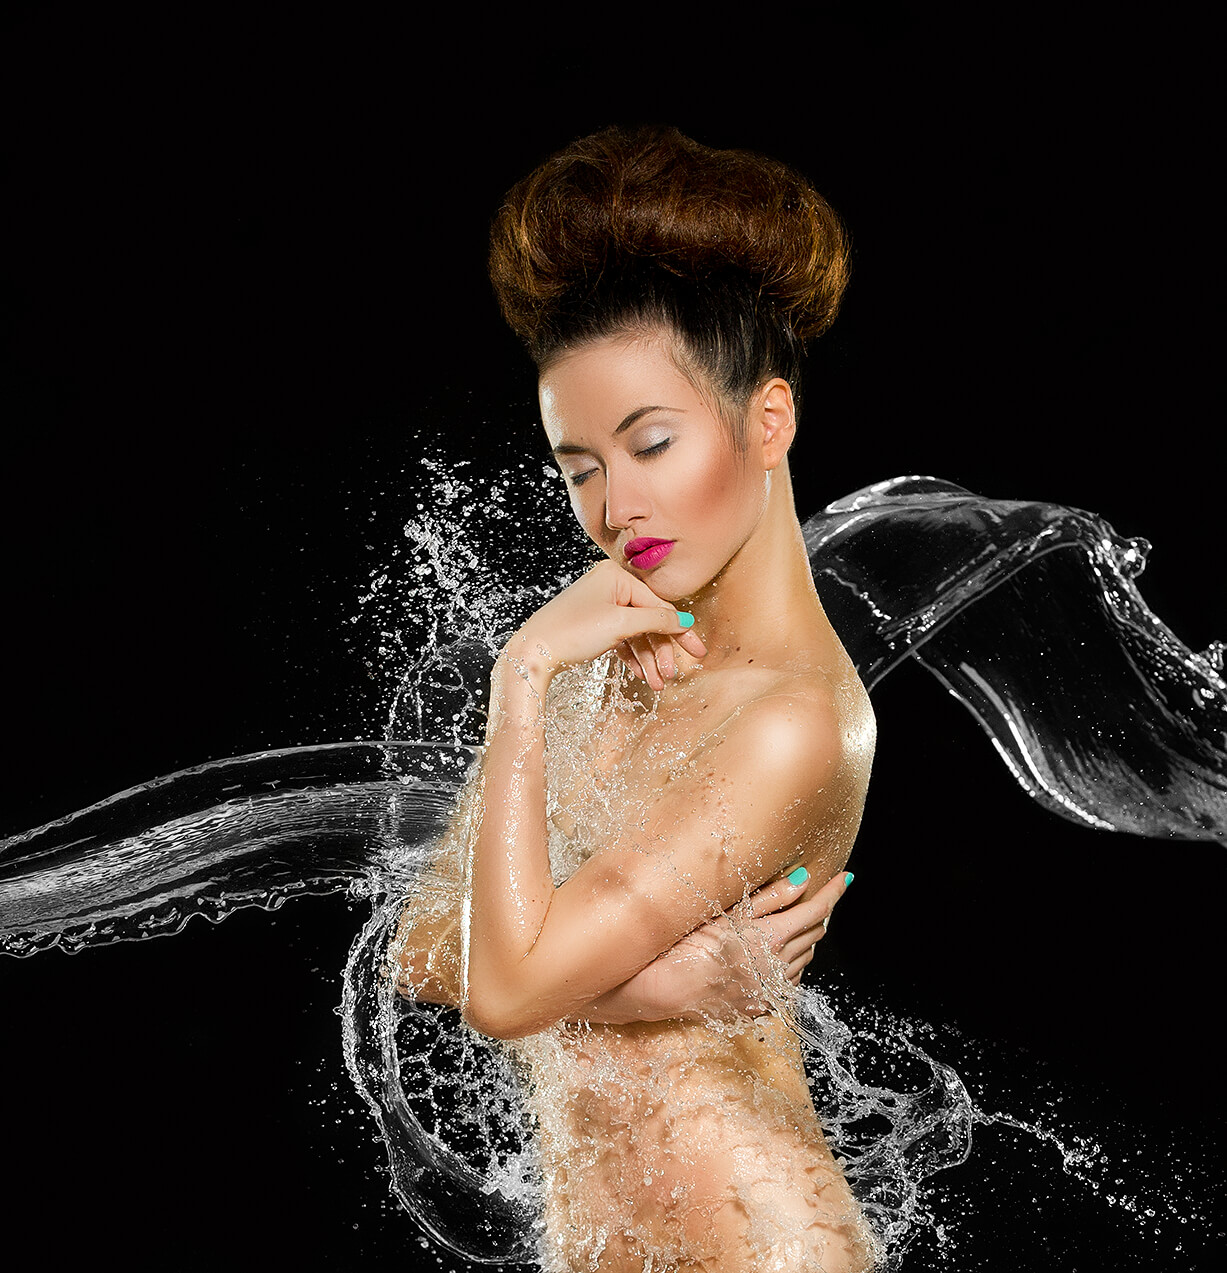 nude model photograph with high speed flash to freeze water droplets